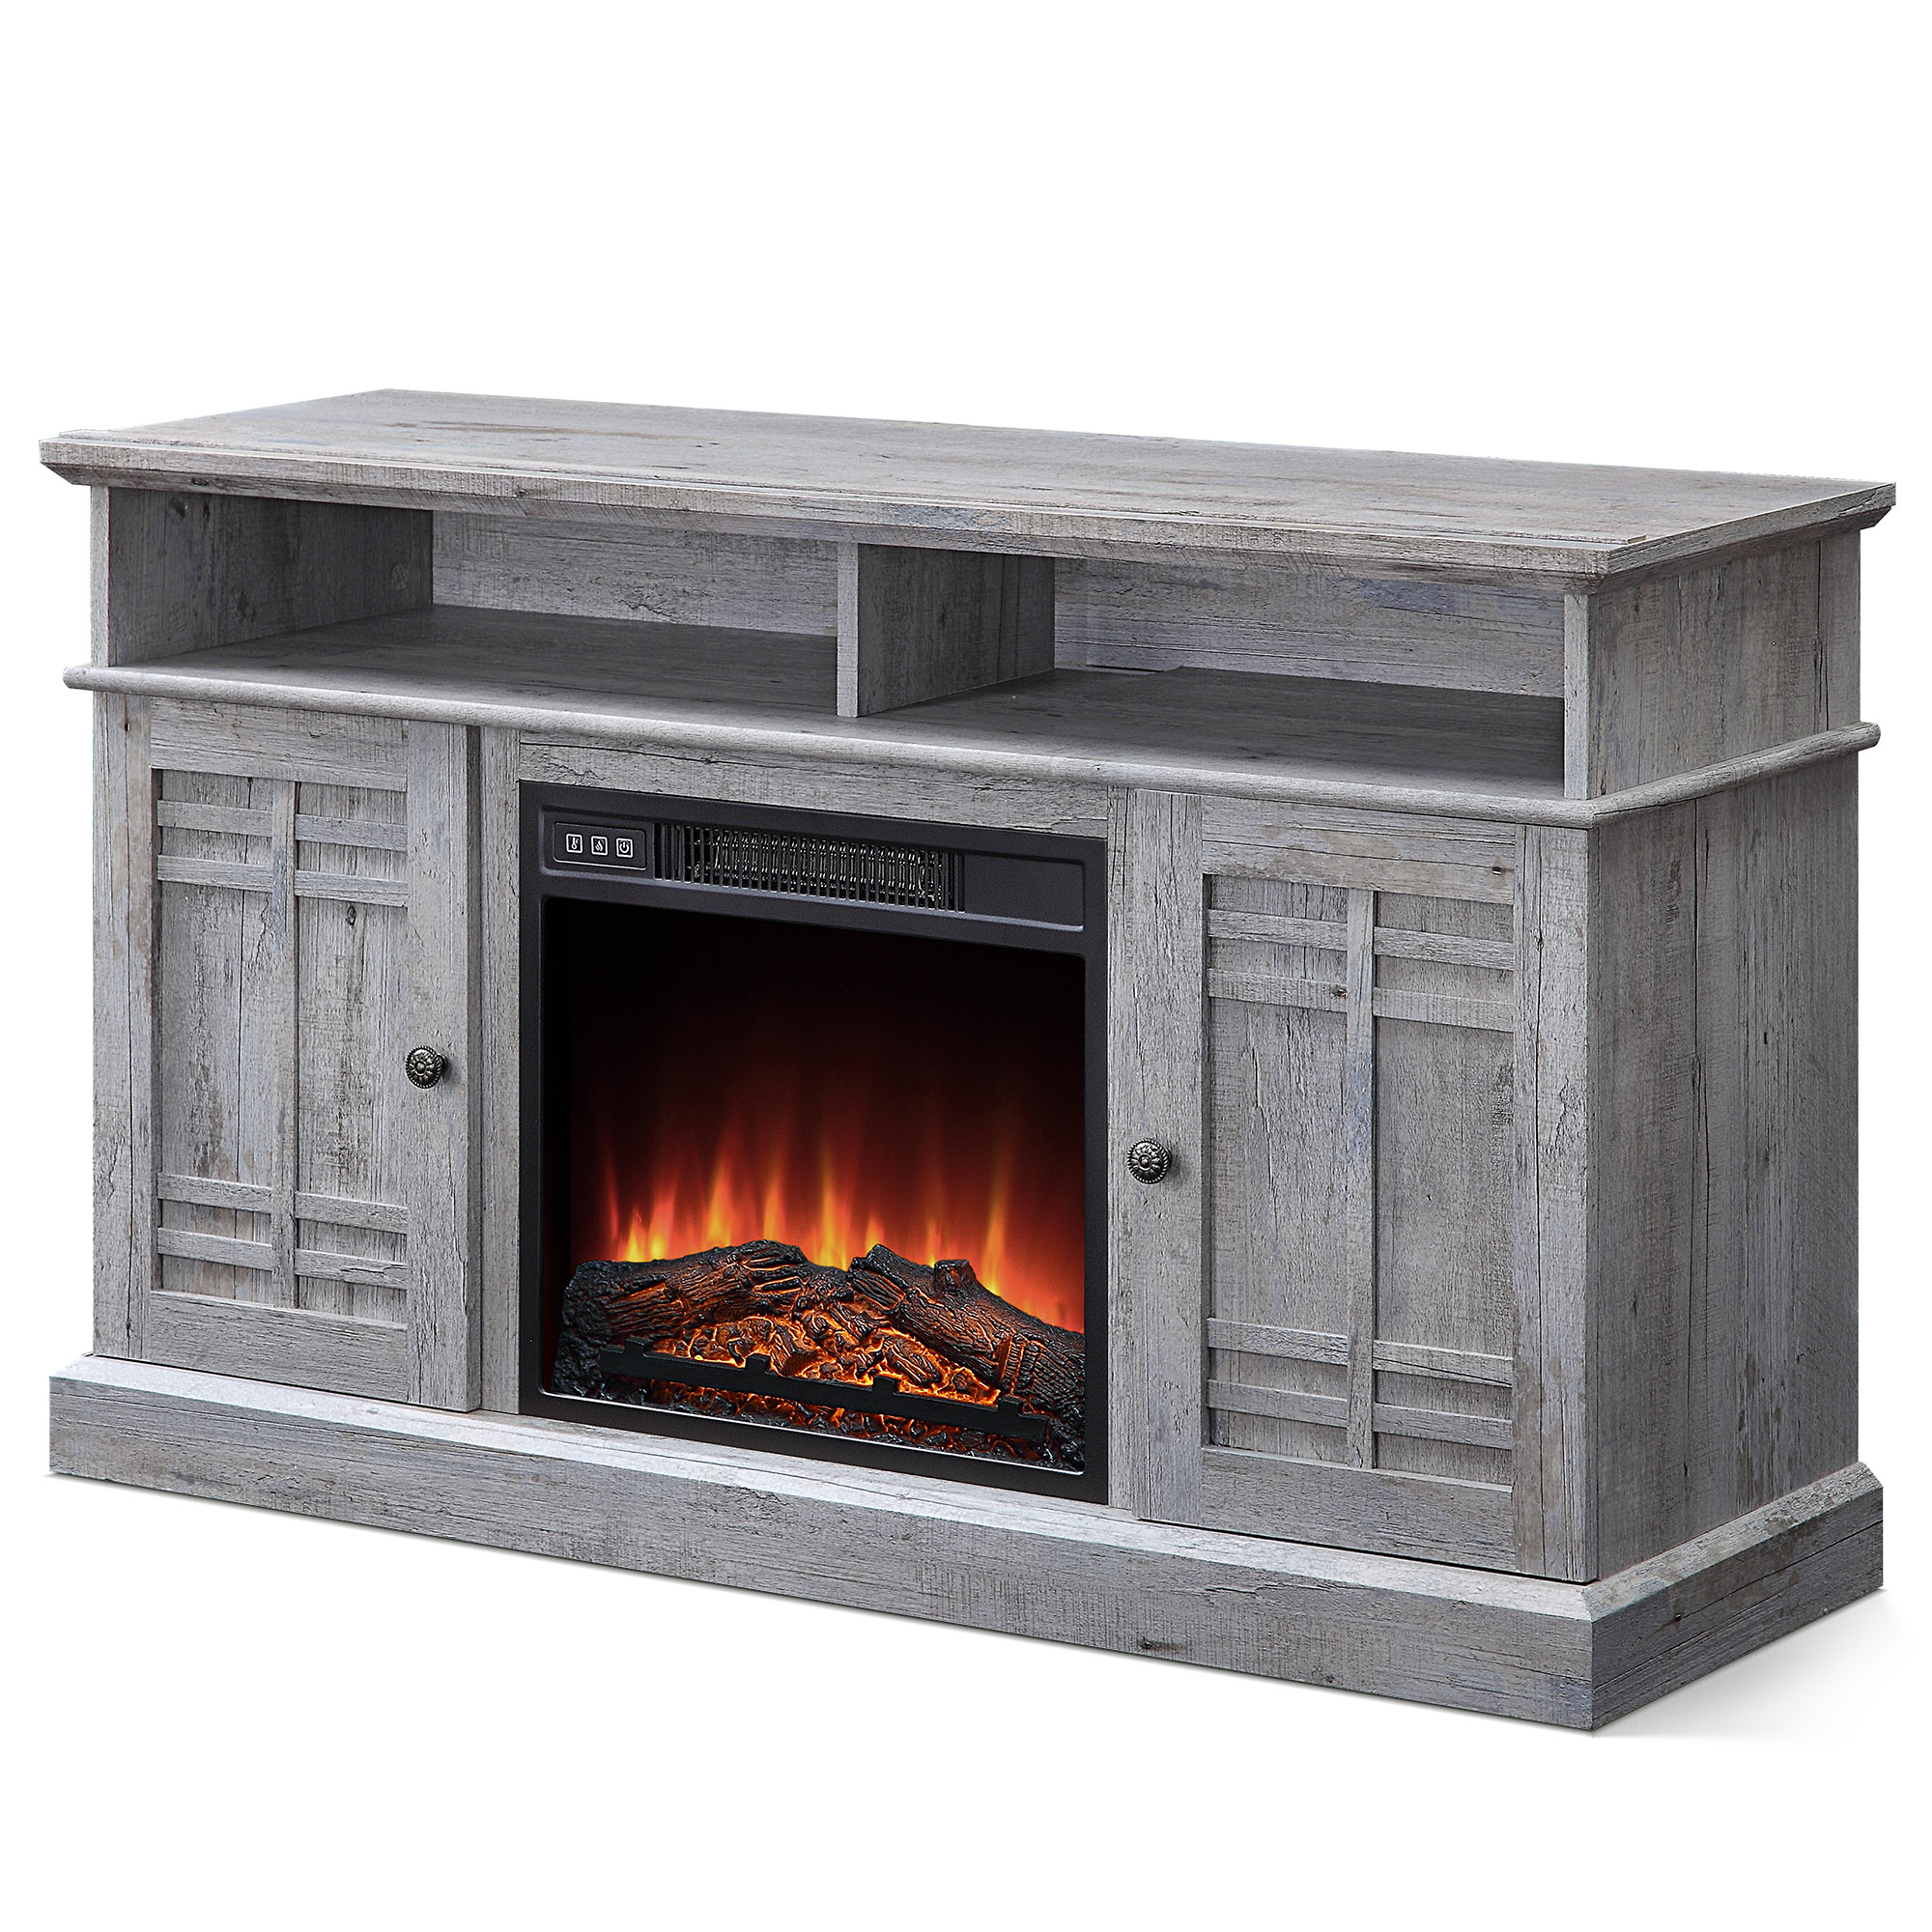 """Most Popular 48"""" Tv Stand Console Media Shelves For Tvs Up To 50"""" W Inside Jowers Tv Stands For Tvs Up To 65"""" (View 22 of 25)"""